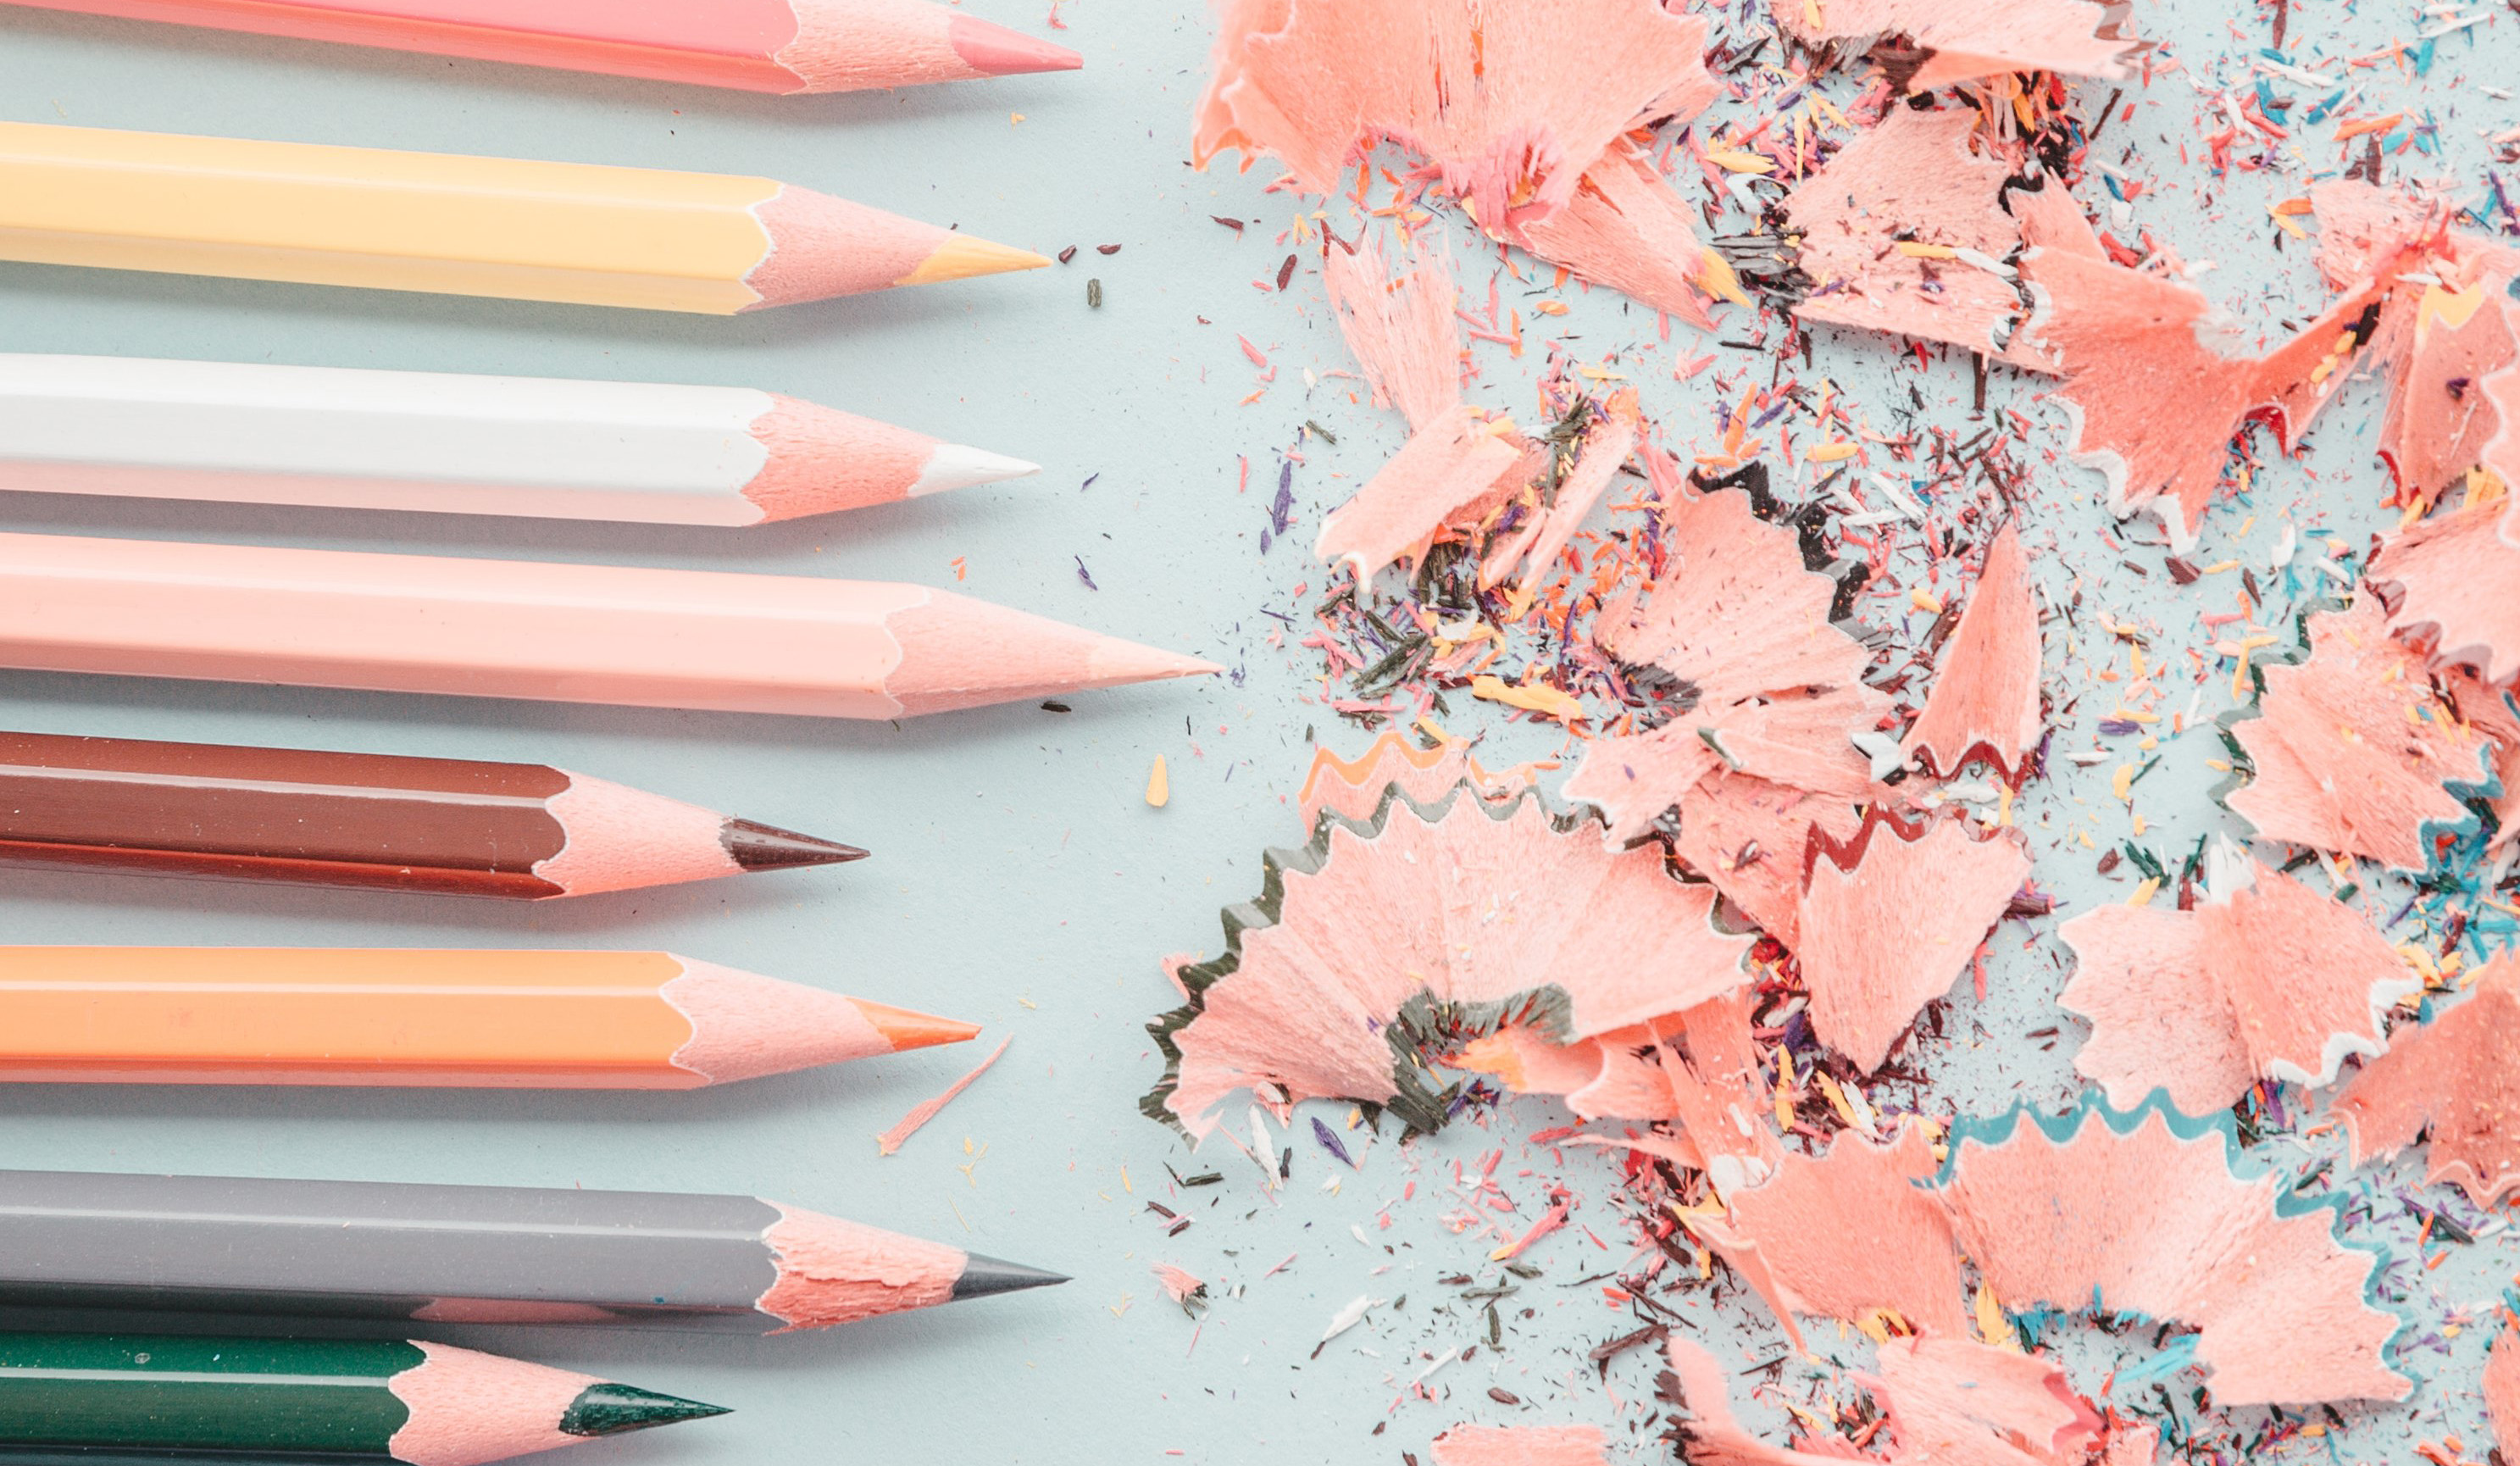 cropped_line-of-pencils-and-shavings